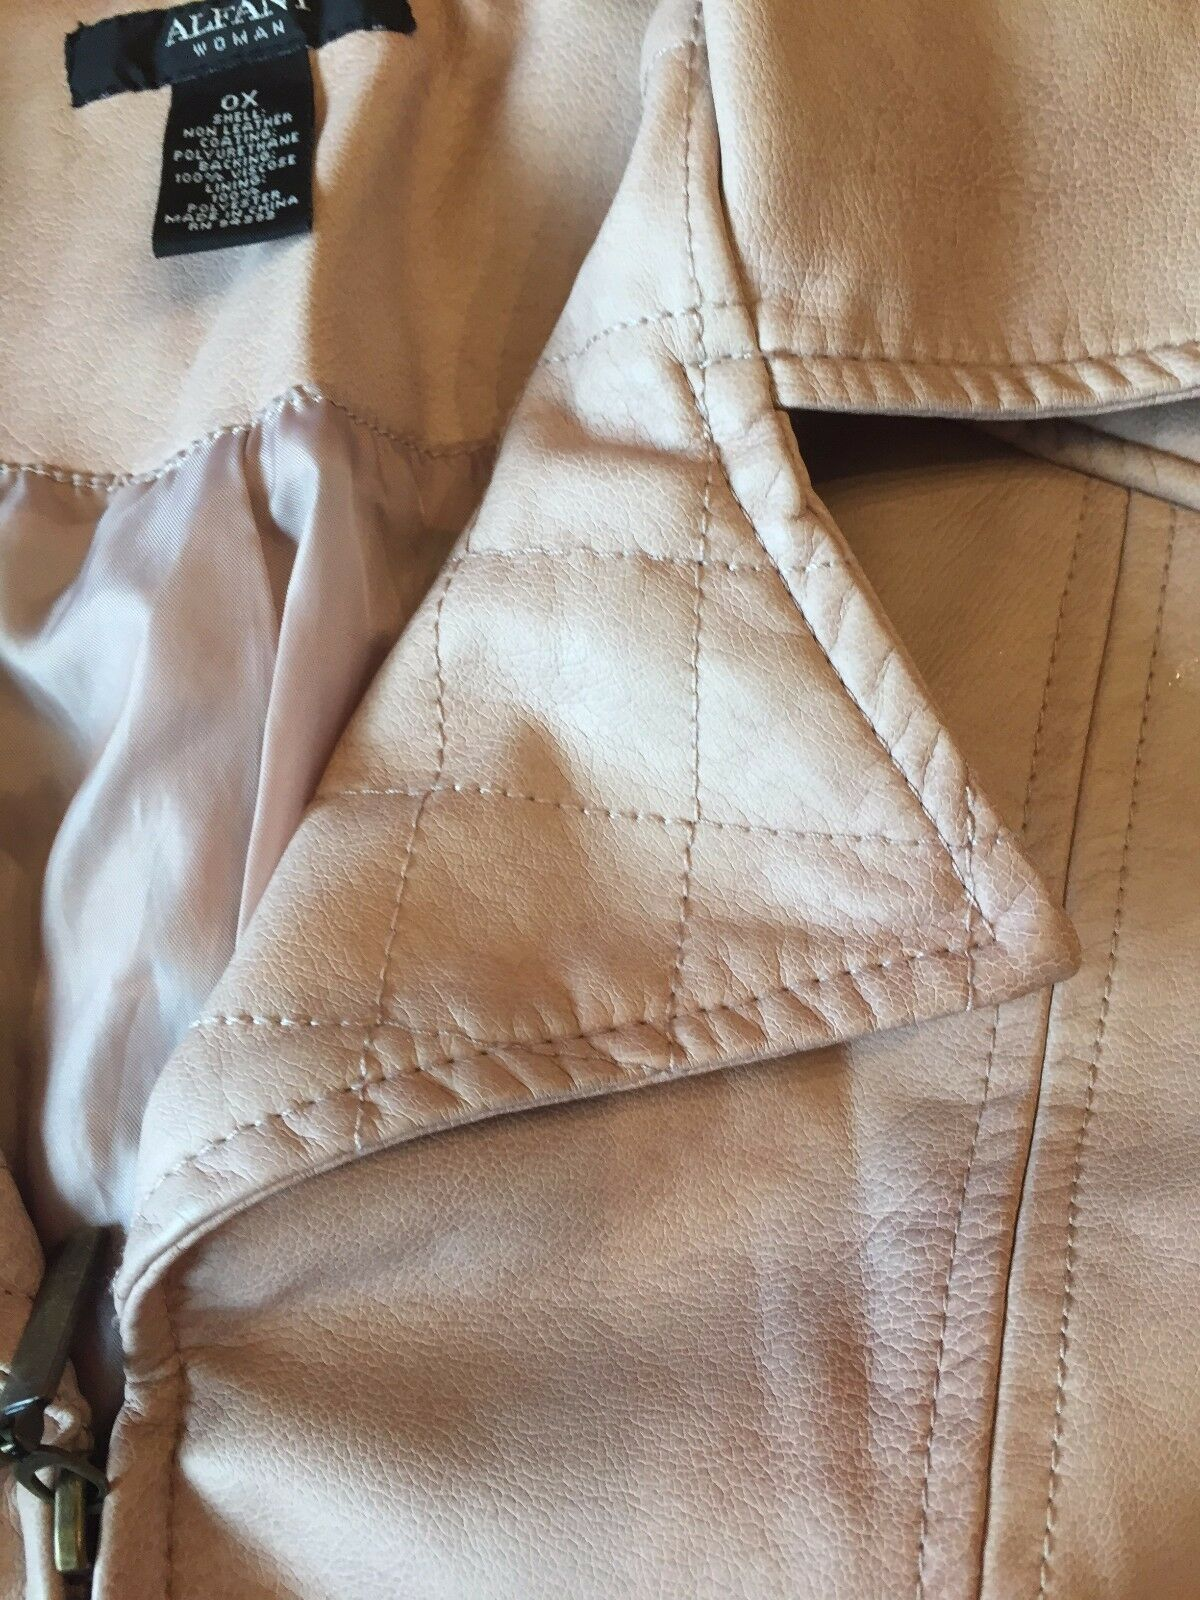 NWT aALFANI MOTORCYCLE FAUX PINK LEATHER - 0X 0X 0X - RTL  119.95 - QUILTED ONE - WOW c82a2b